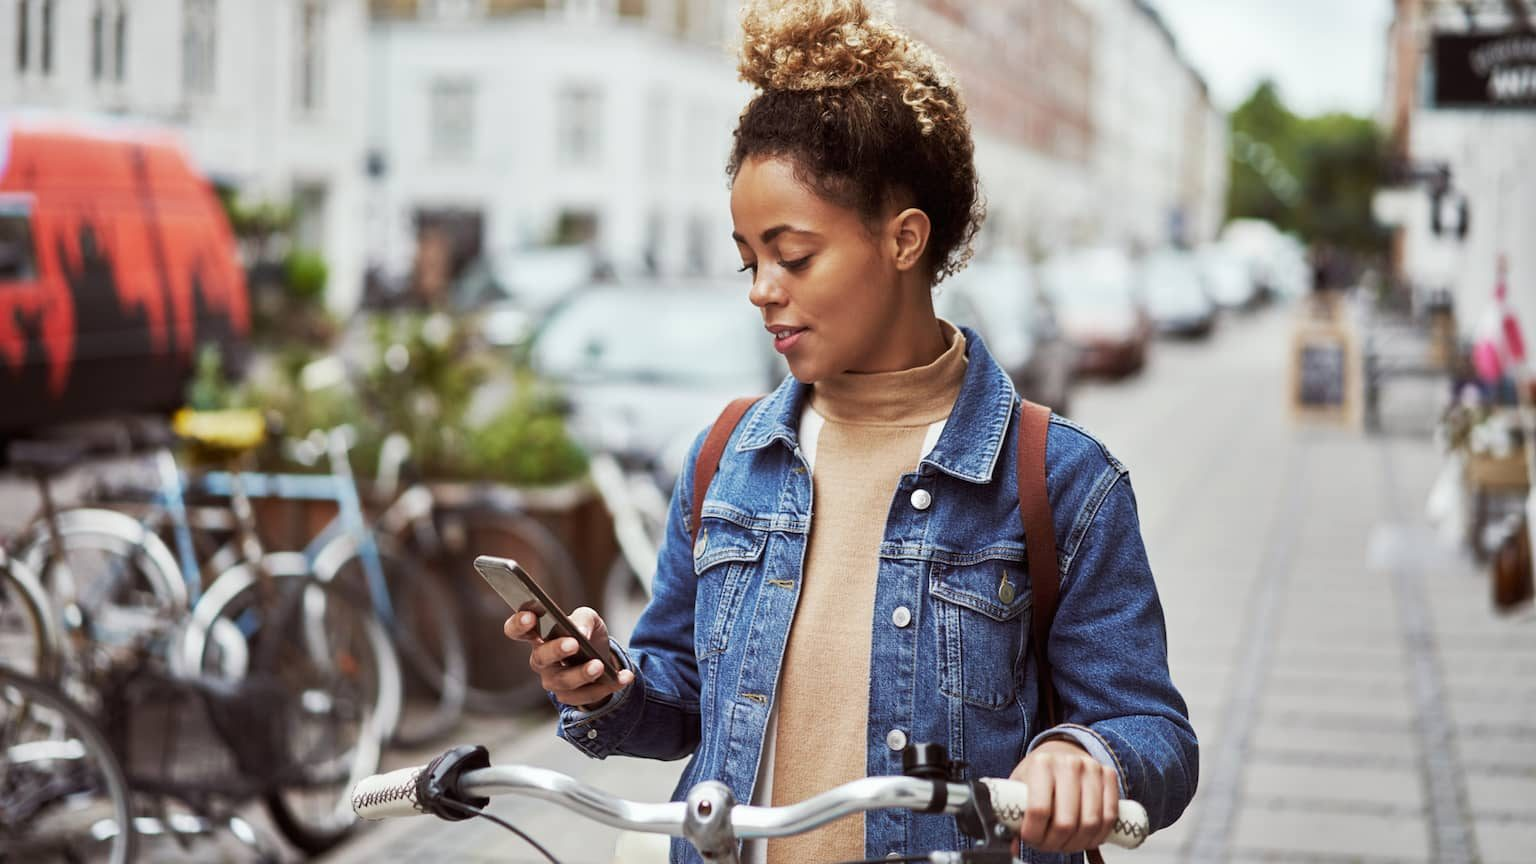 Young woman on bike, looking at her smartphone.